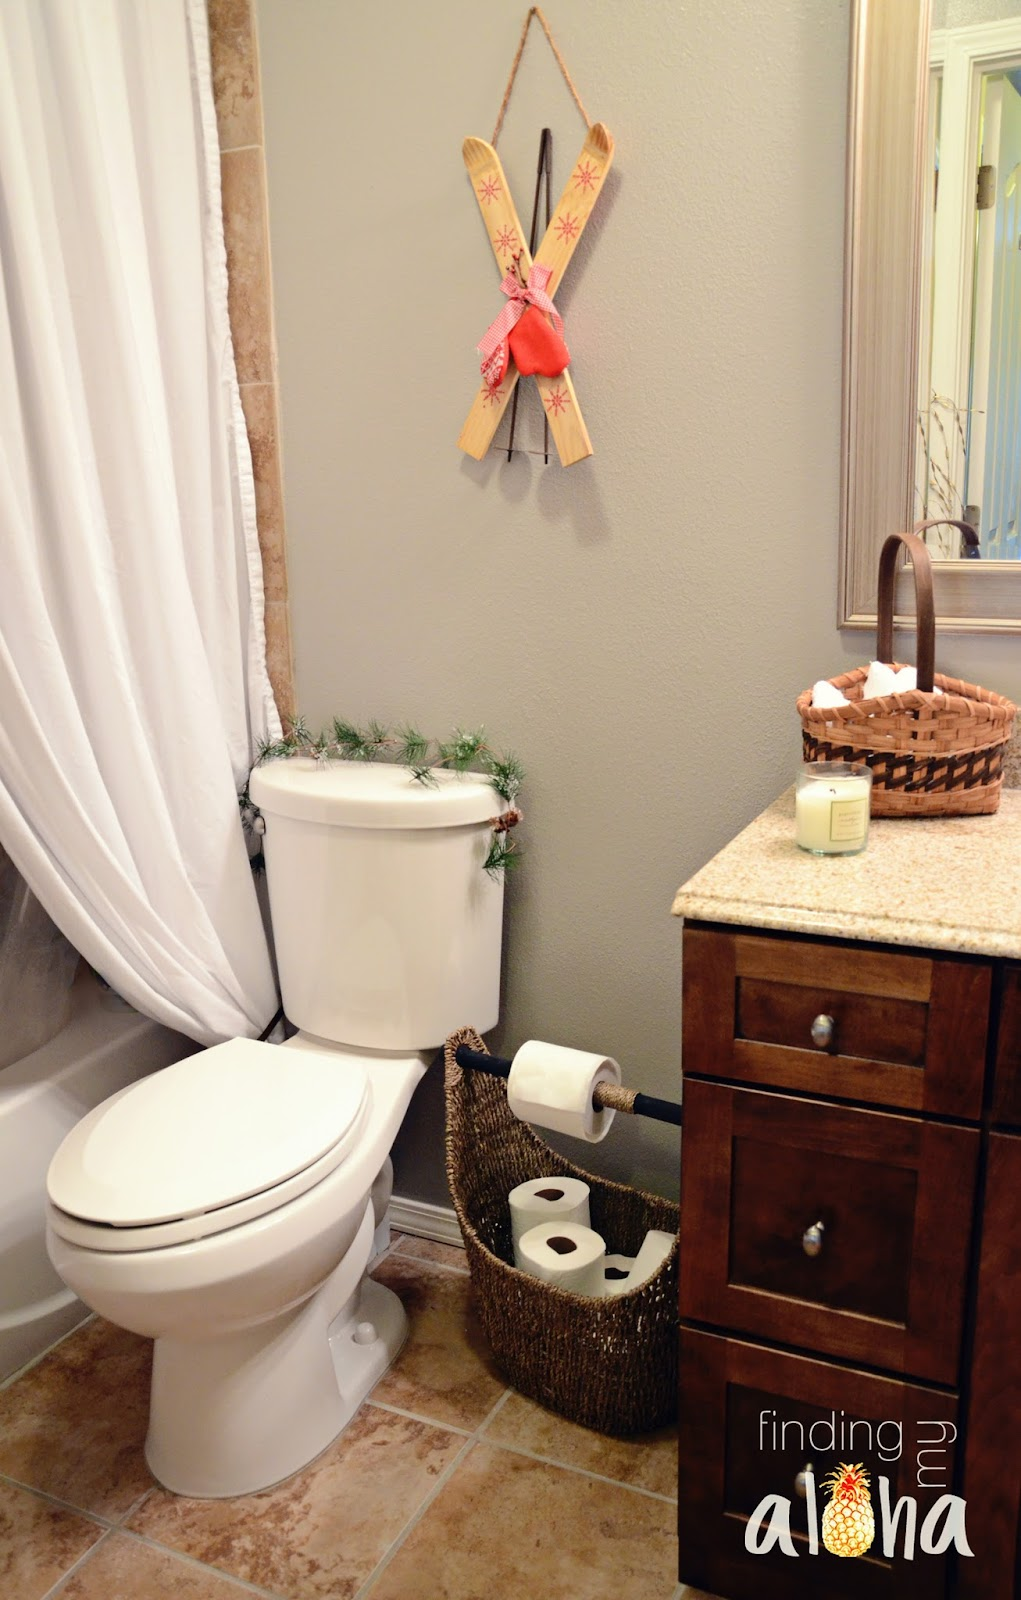 finding my aloha: decorating bathrooms for christmas- {tips & a tour}